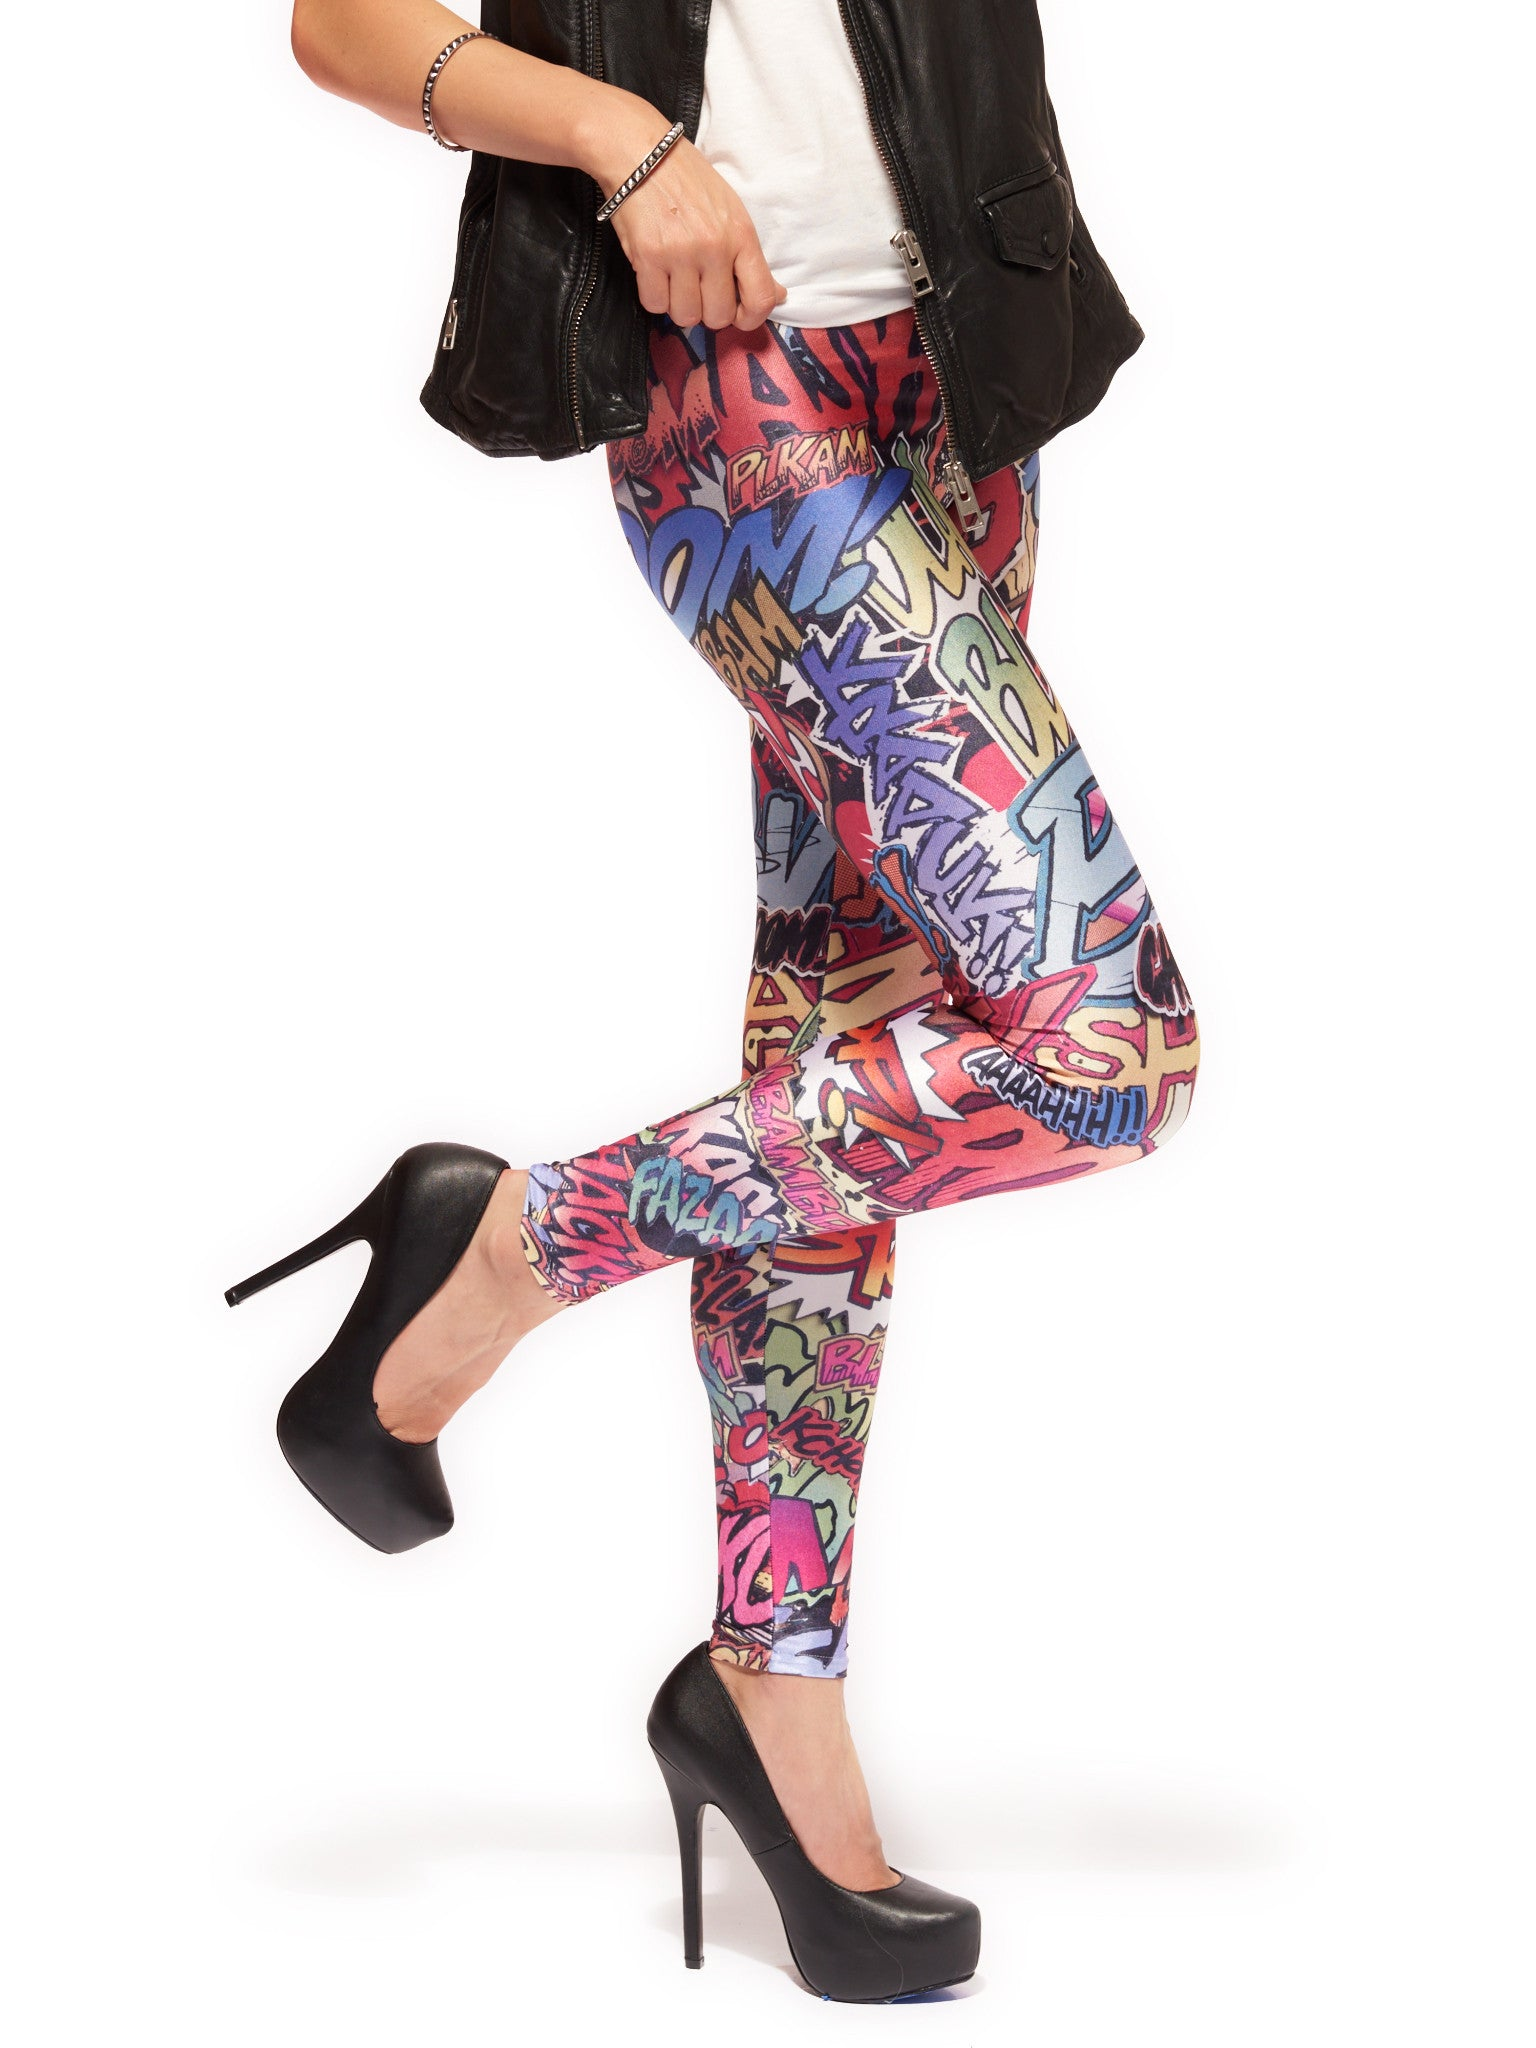 Action Packed Queen West Leggings - Nuvango  - 2